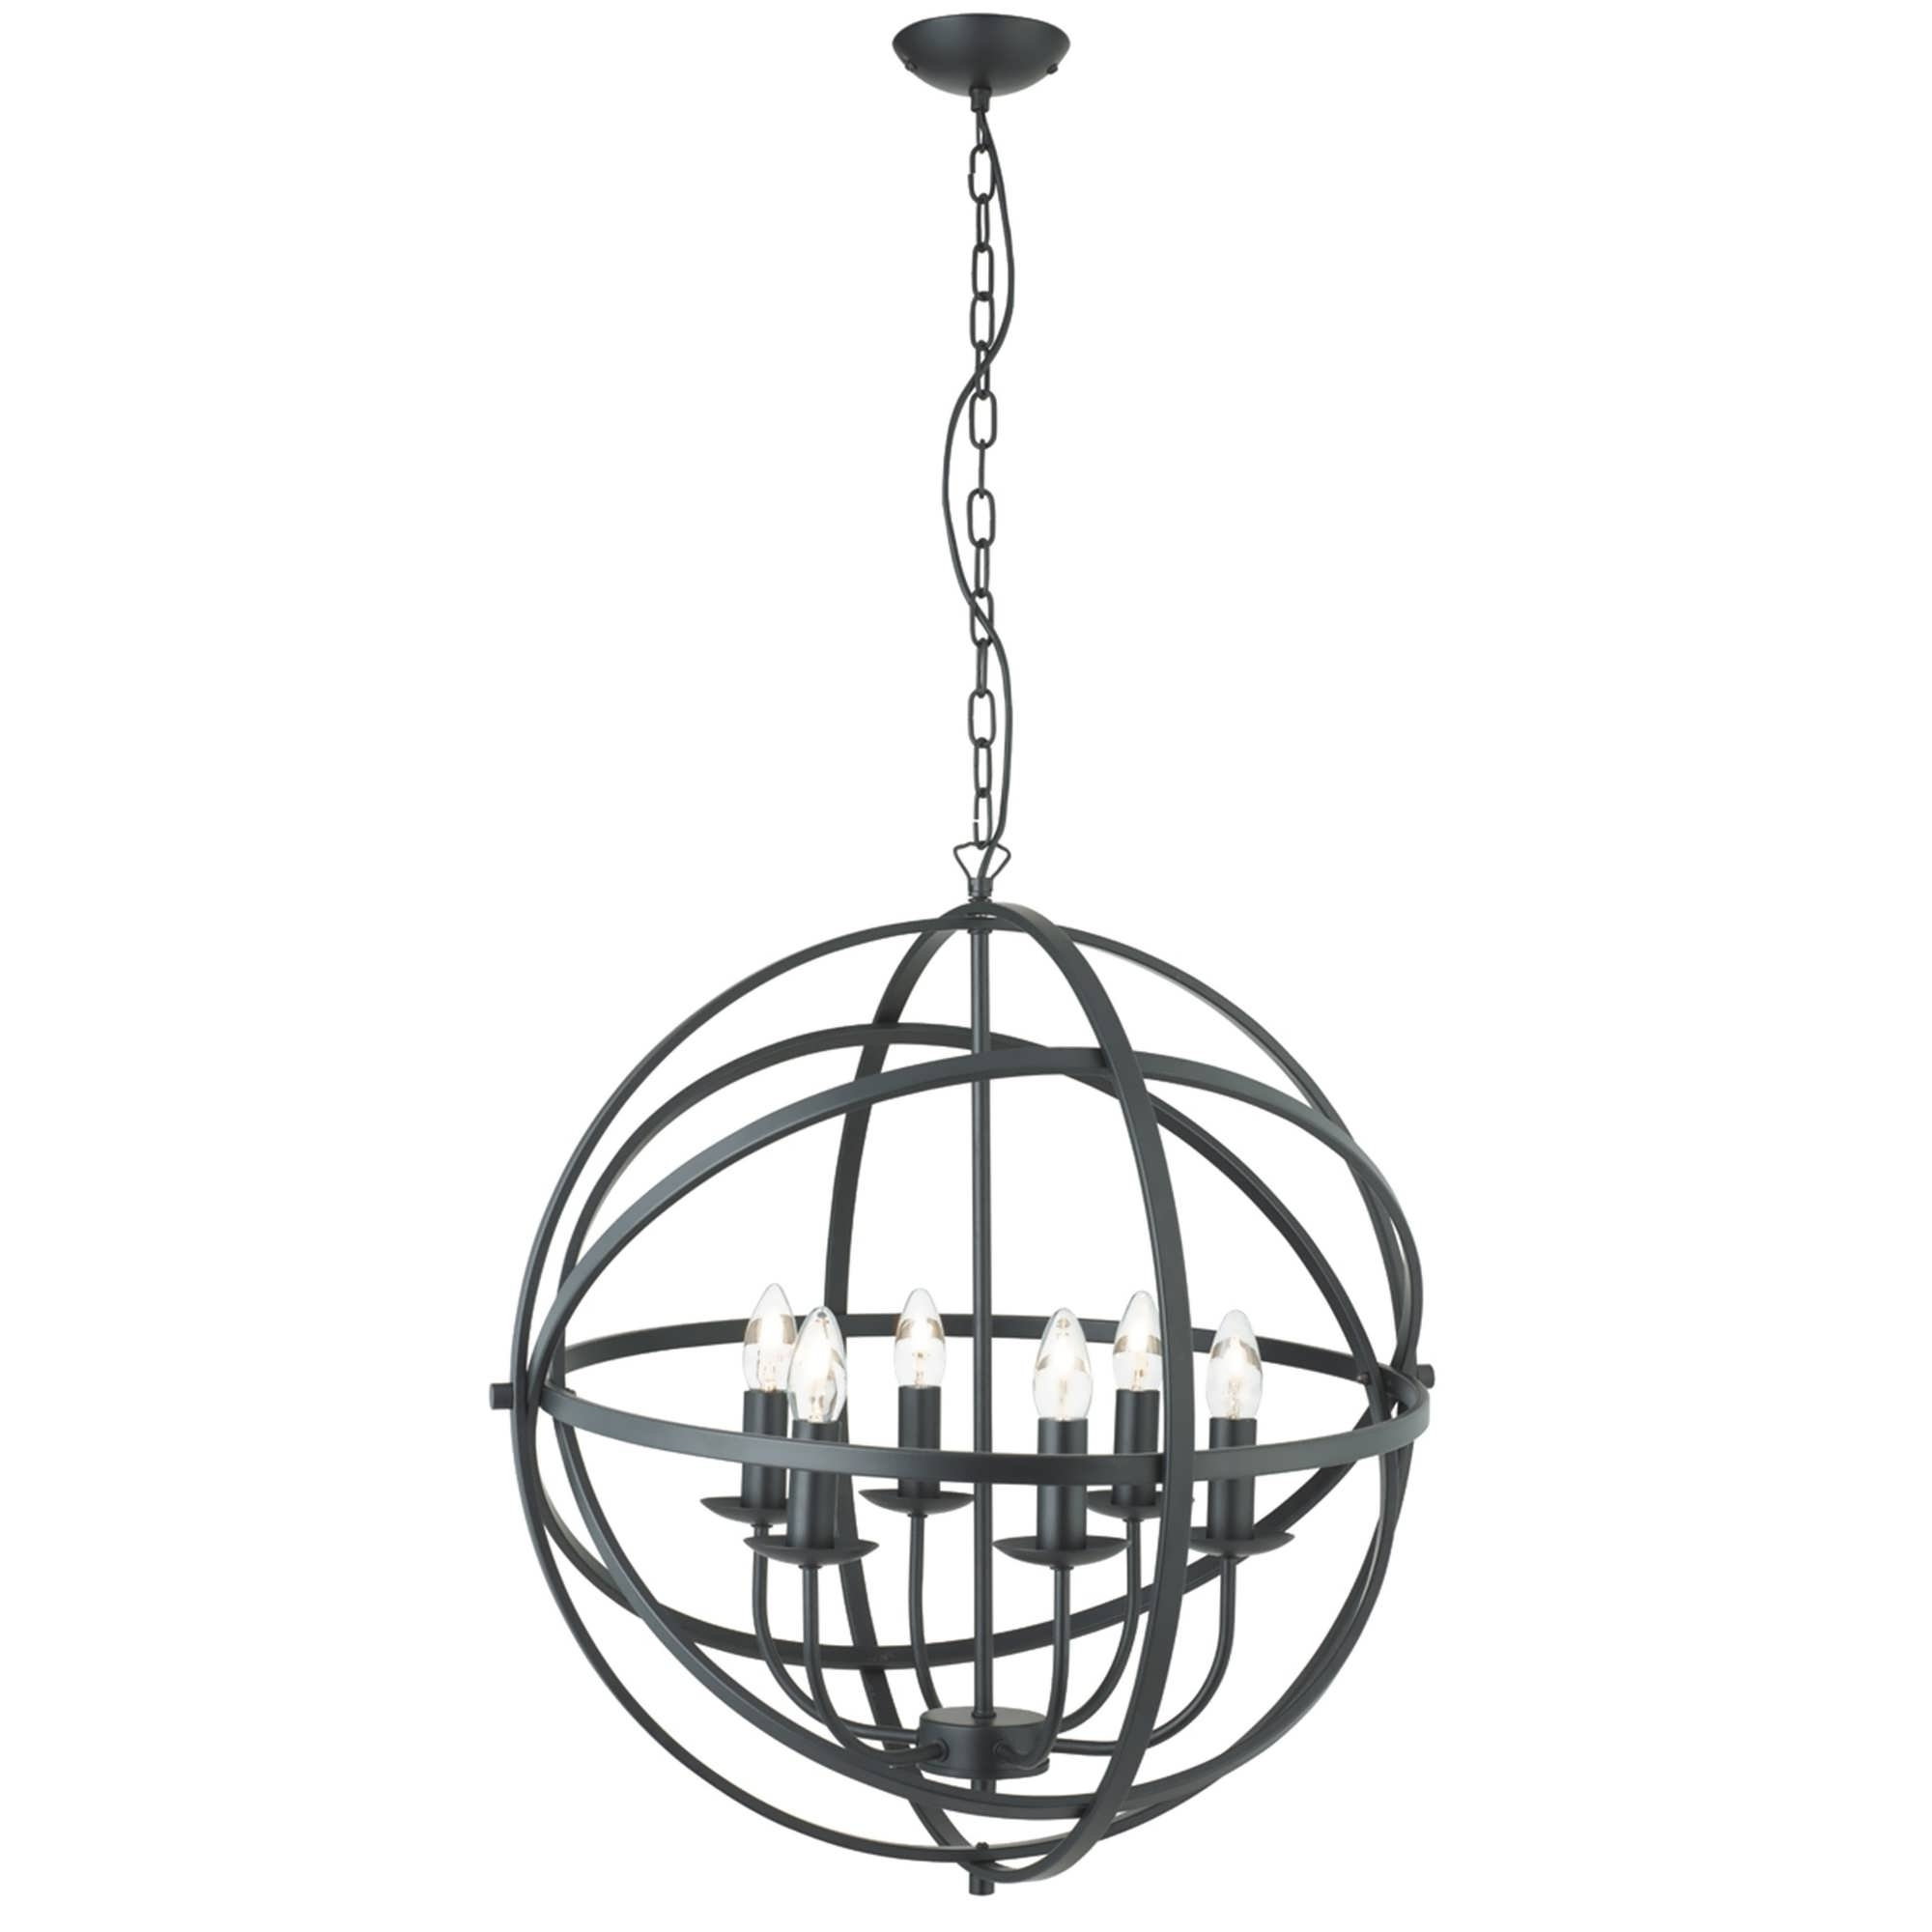 Metal Ball Chandeliers Within Current Chandeliers Design : Marvelous Iron Orb Chandelier Rustic (View 10 of 15)